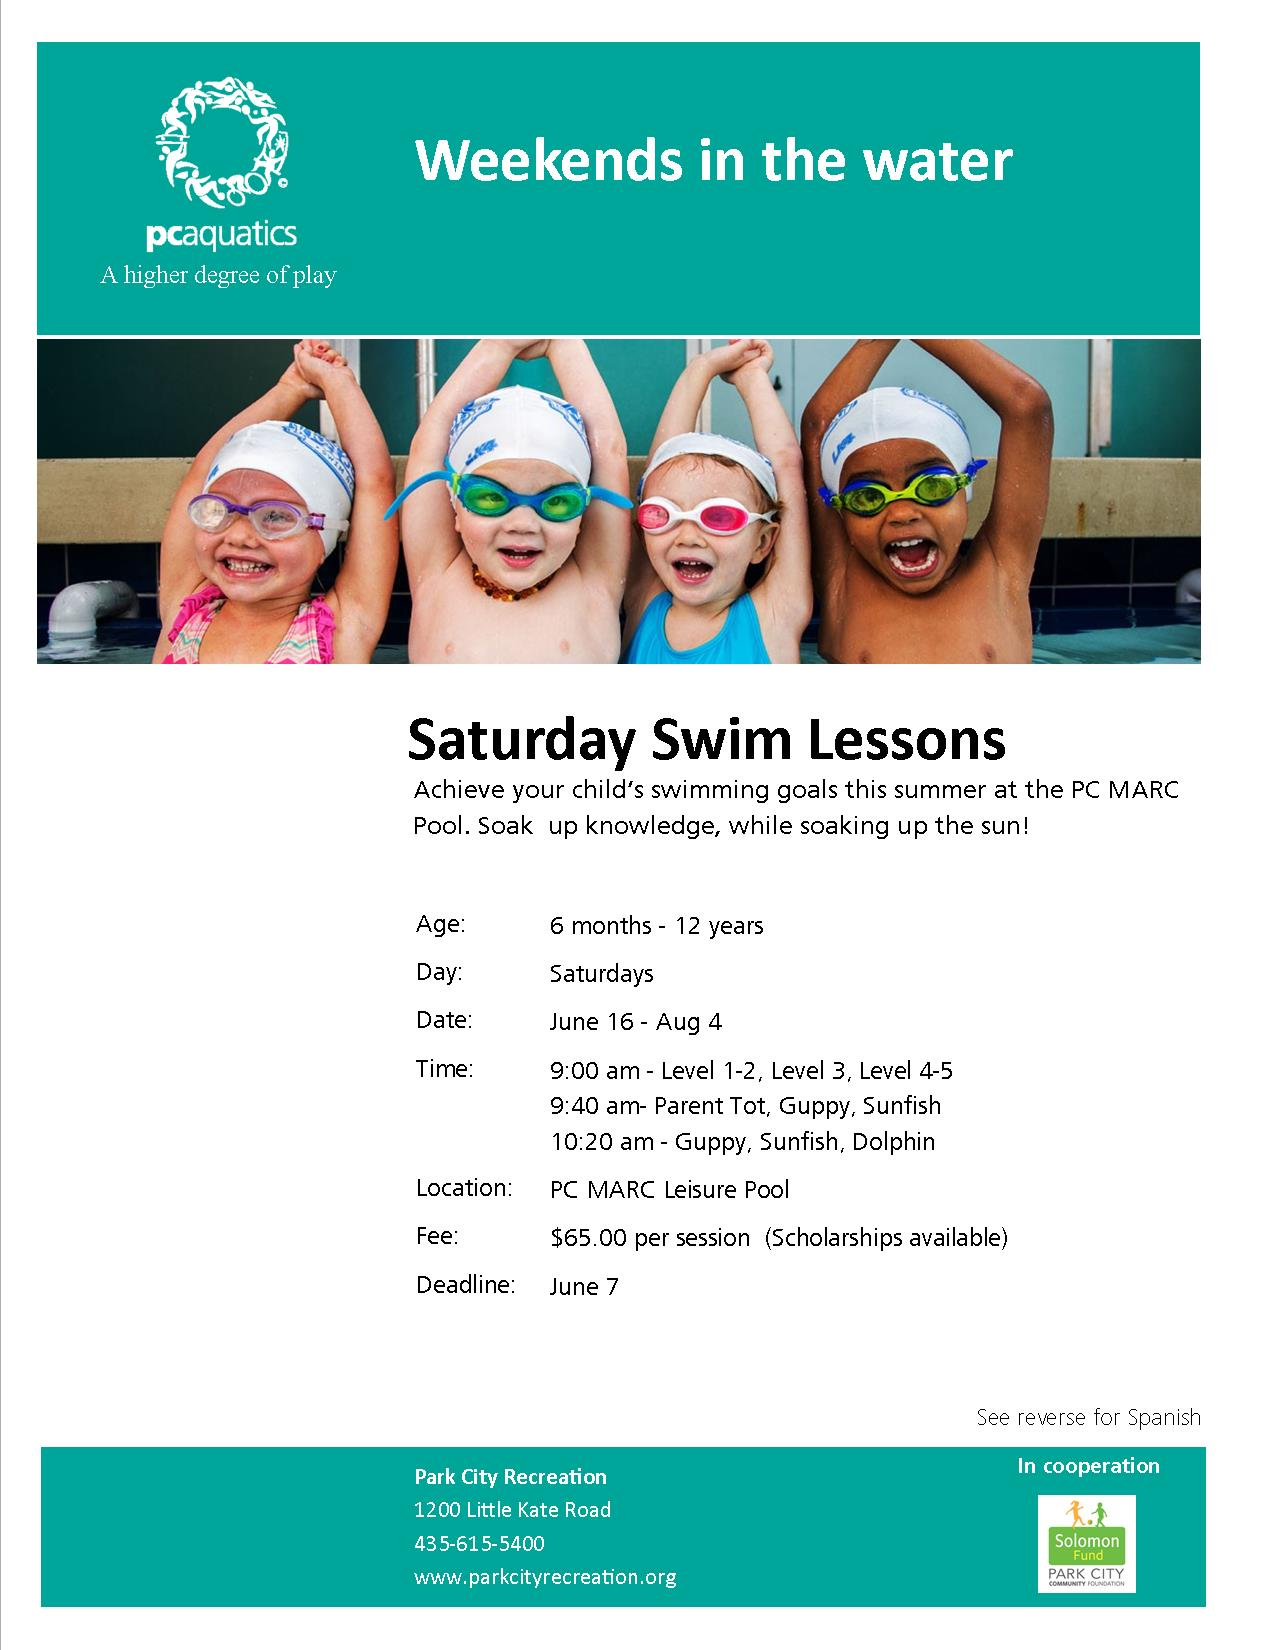 Saturday Swim Lessons 2018 flyer